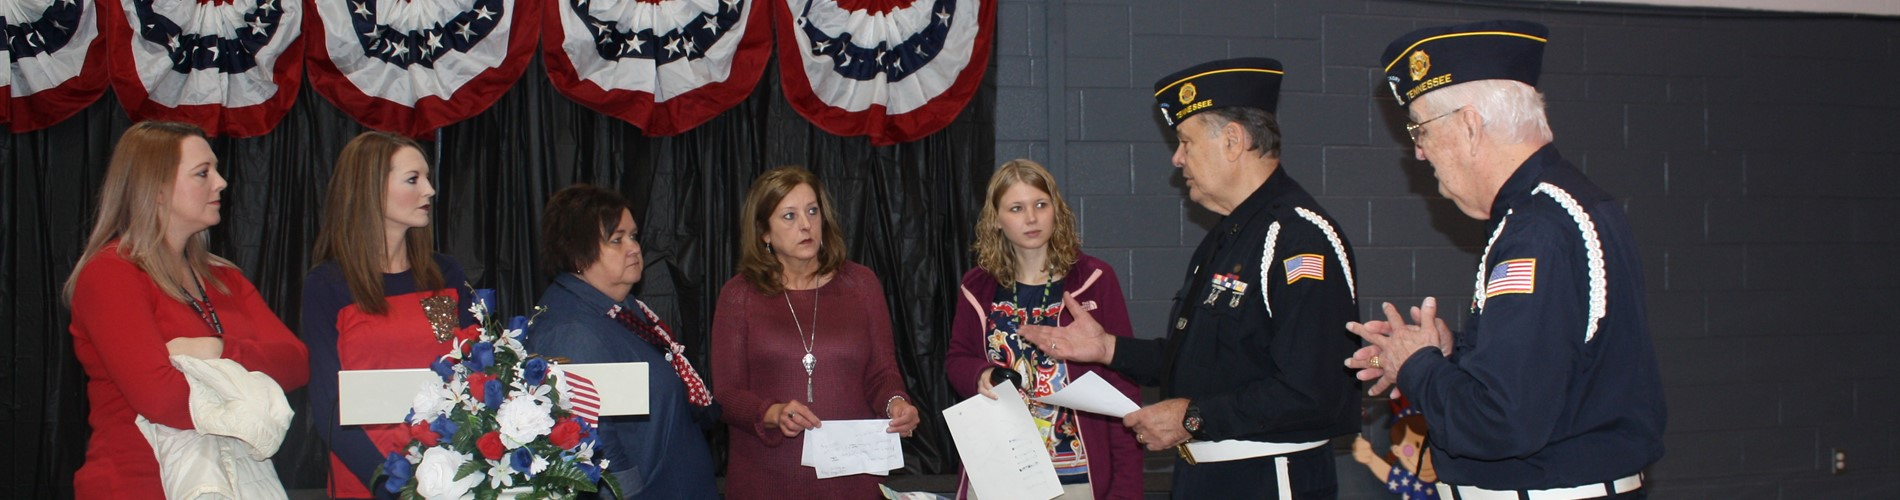 Johnson County Honor Guard and Laurel Elementary staff prepare for the Veteran's Day Service.